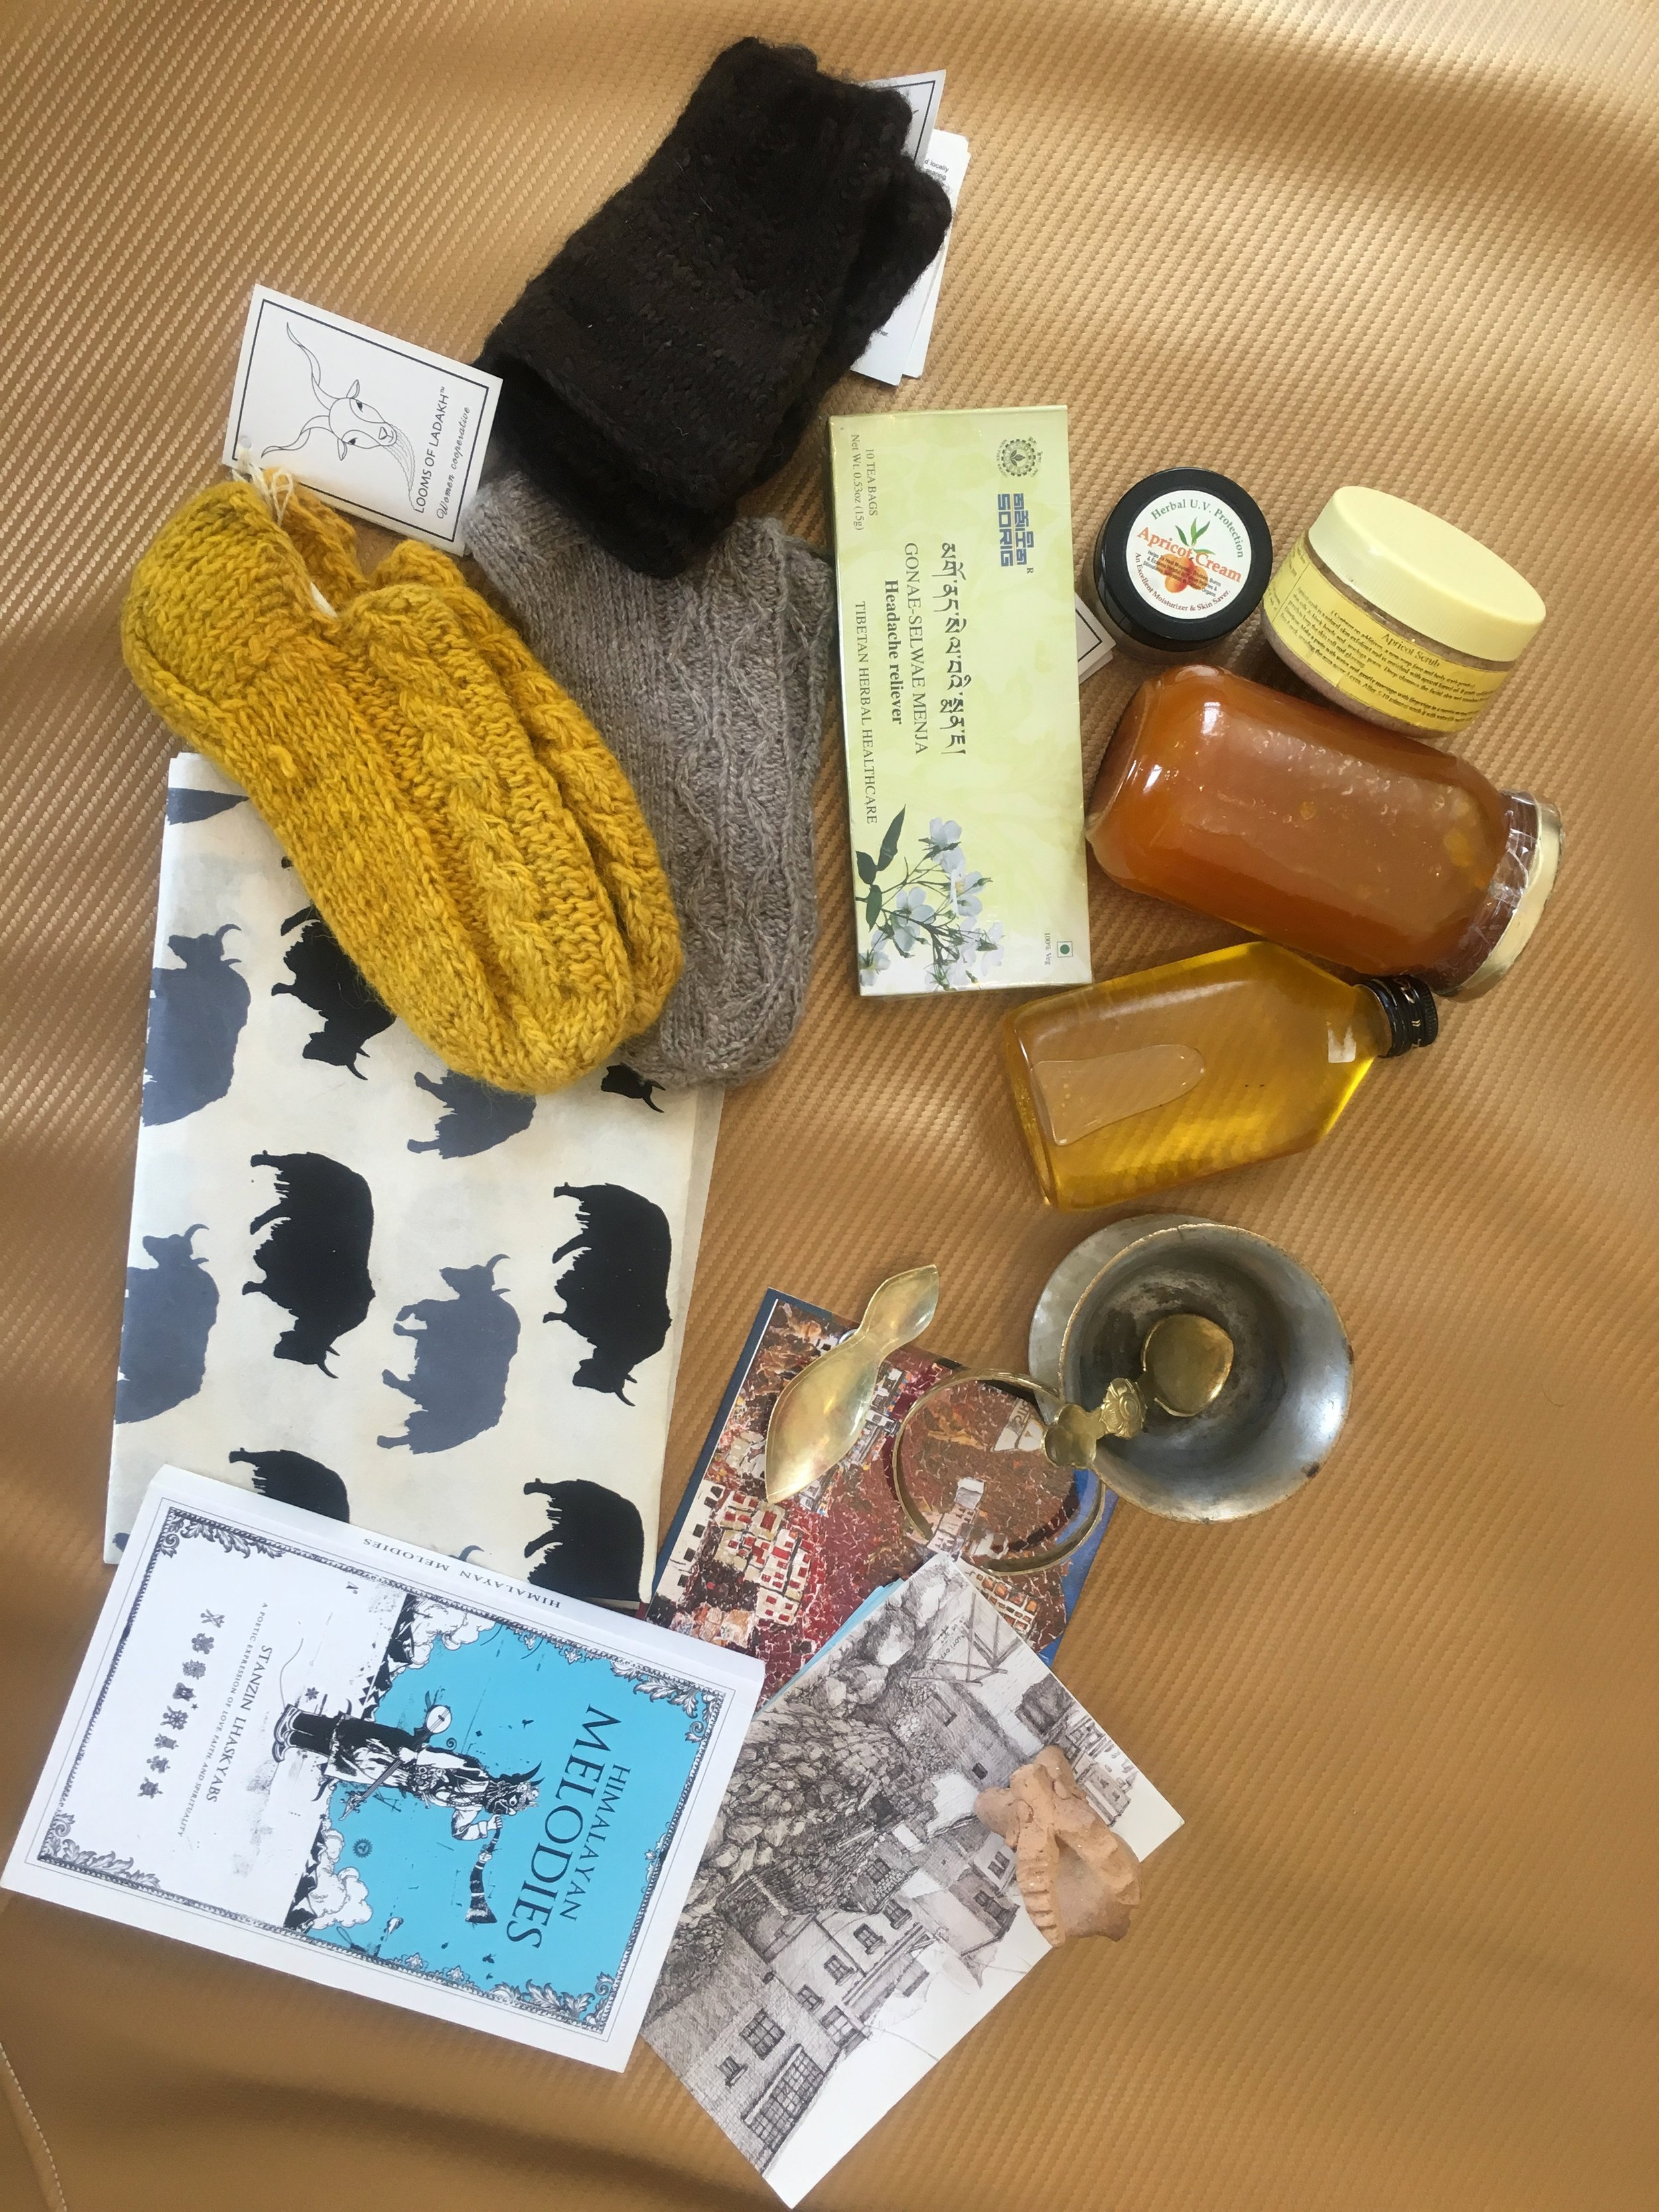 pashmina socks from looms of ladakhapricot scrub, jam, balm and oil from the apricot shopvintage cha cup from karmaPostcards from LAMO SHOPRICE ART PAPER FROM NORBULINKAPOETRY BOOKS FROM GULSHAN BOOKSHOP - what to buy in lEH?